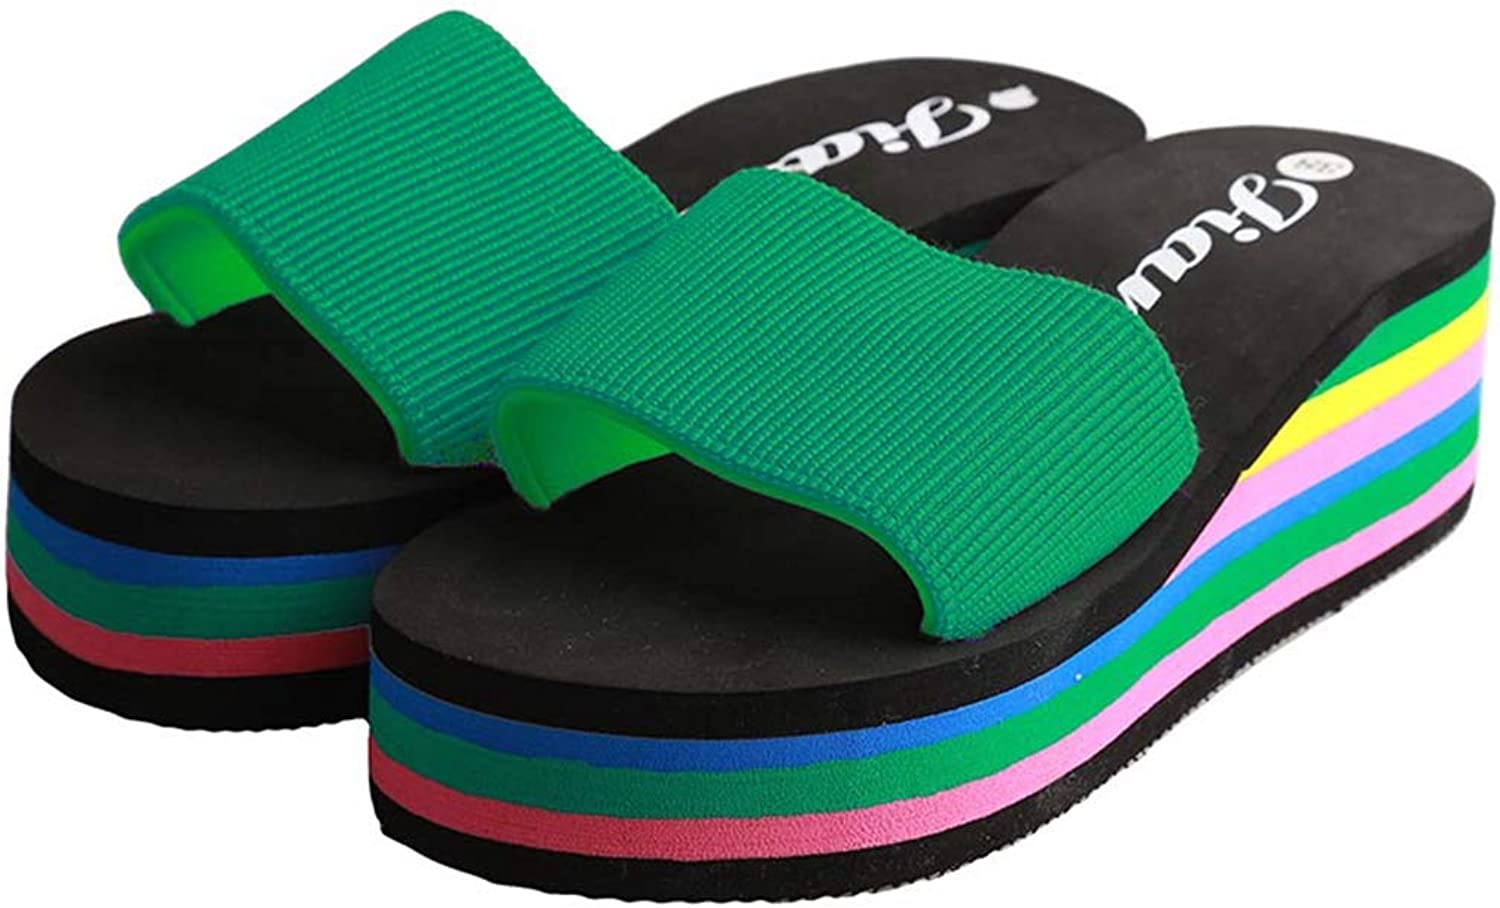 Fay Waters Women Slippers Fashion Rainbow Home Slides Casual Wedge Heels Beach Sandals